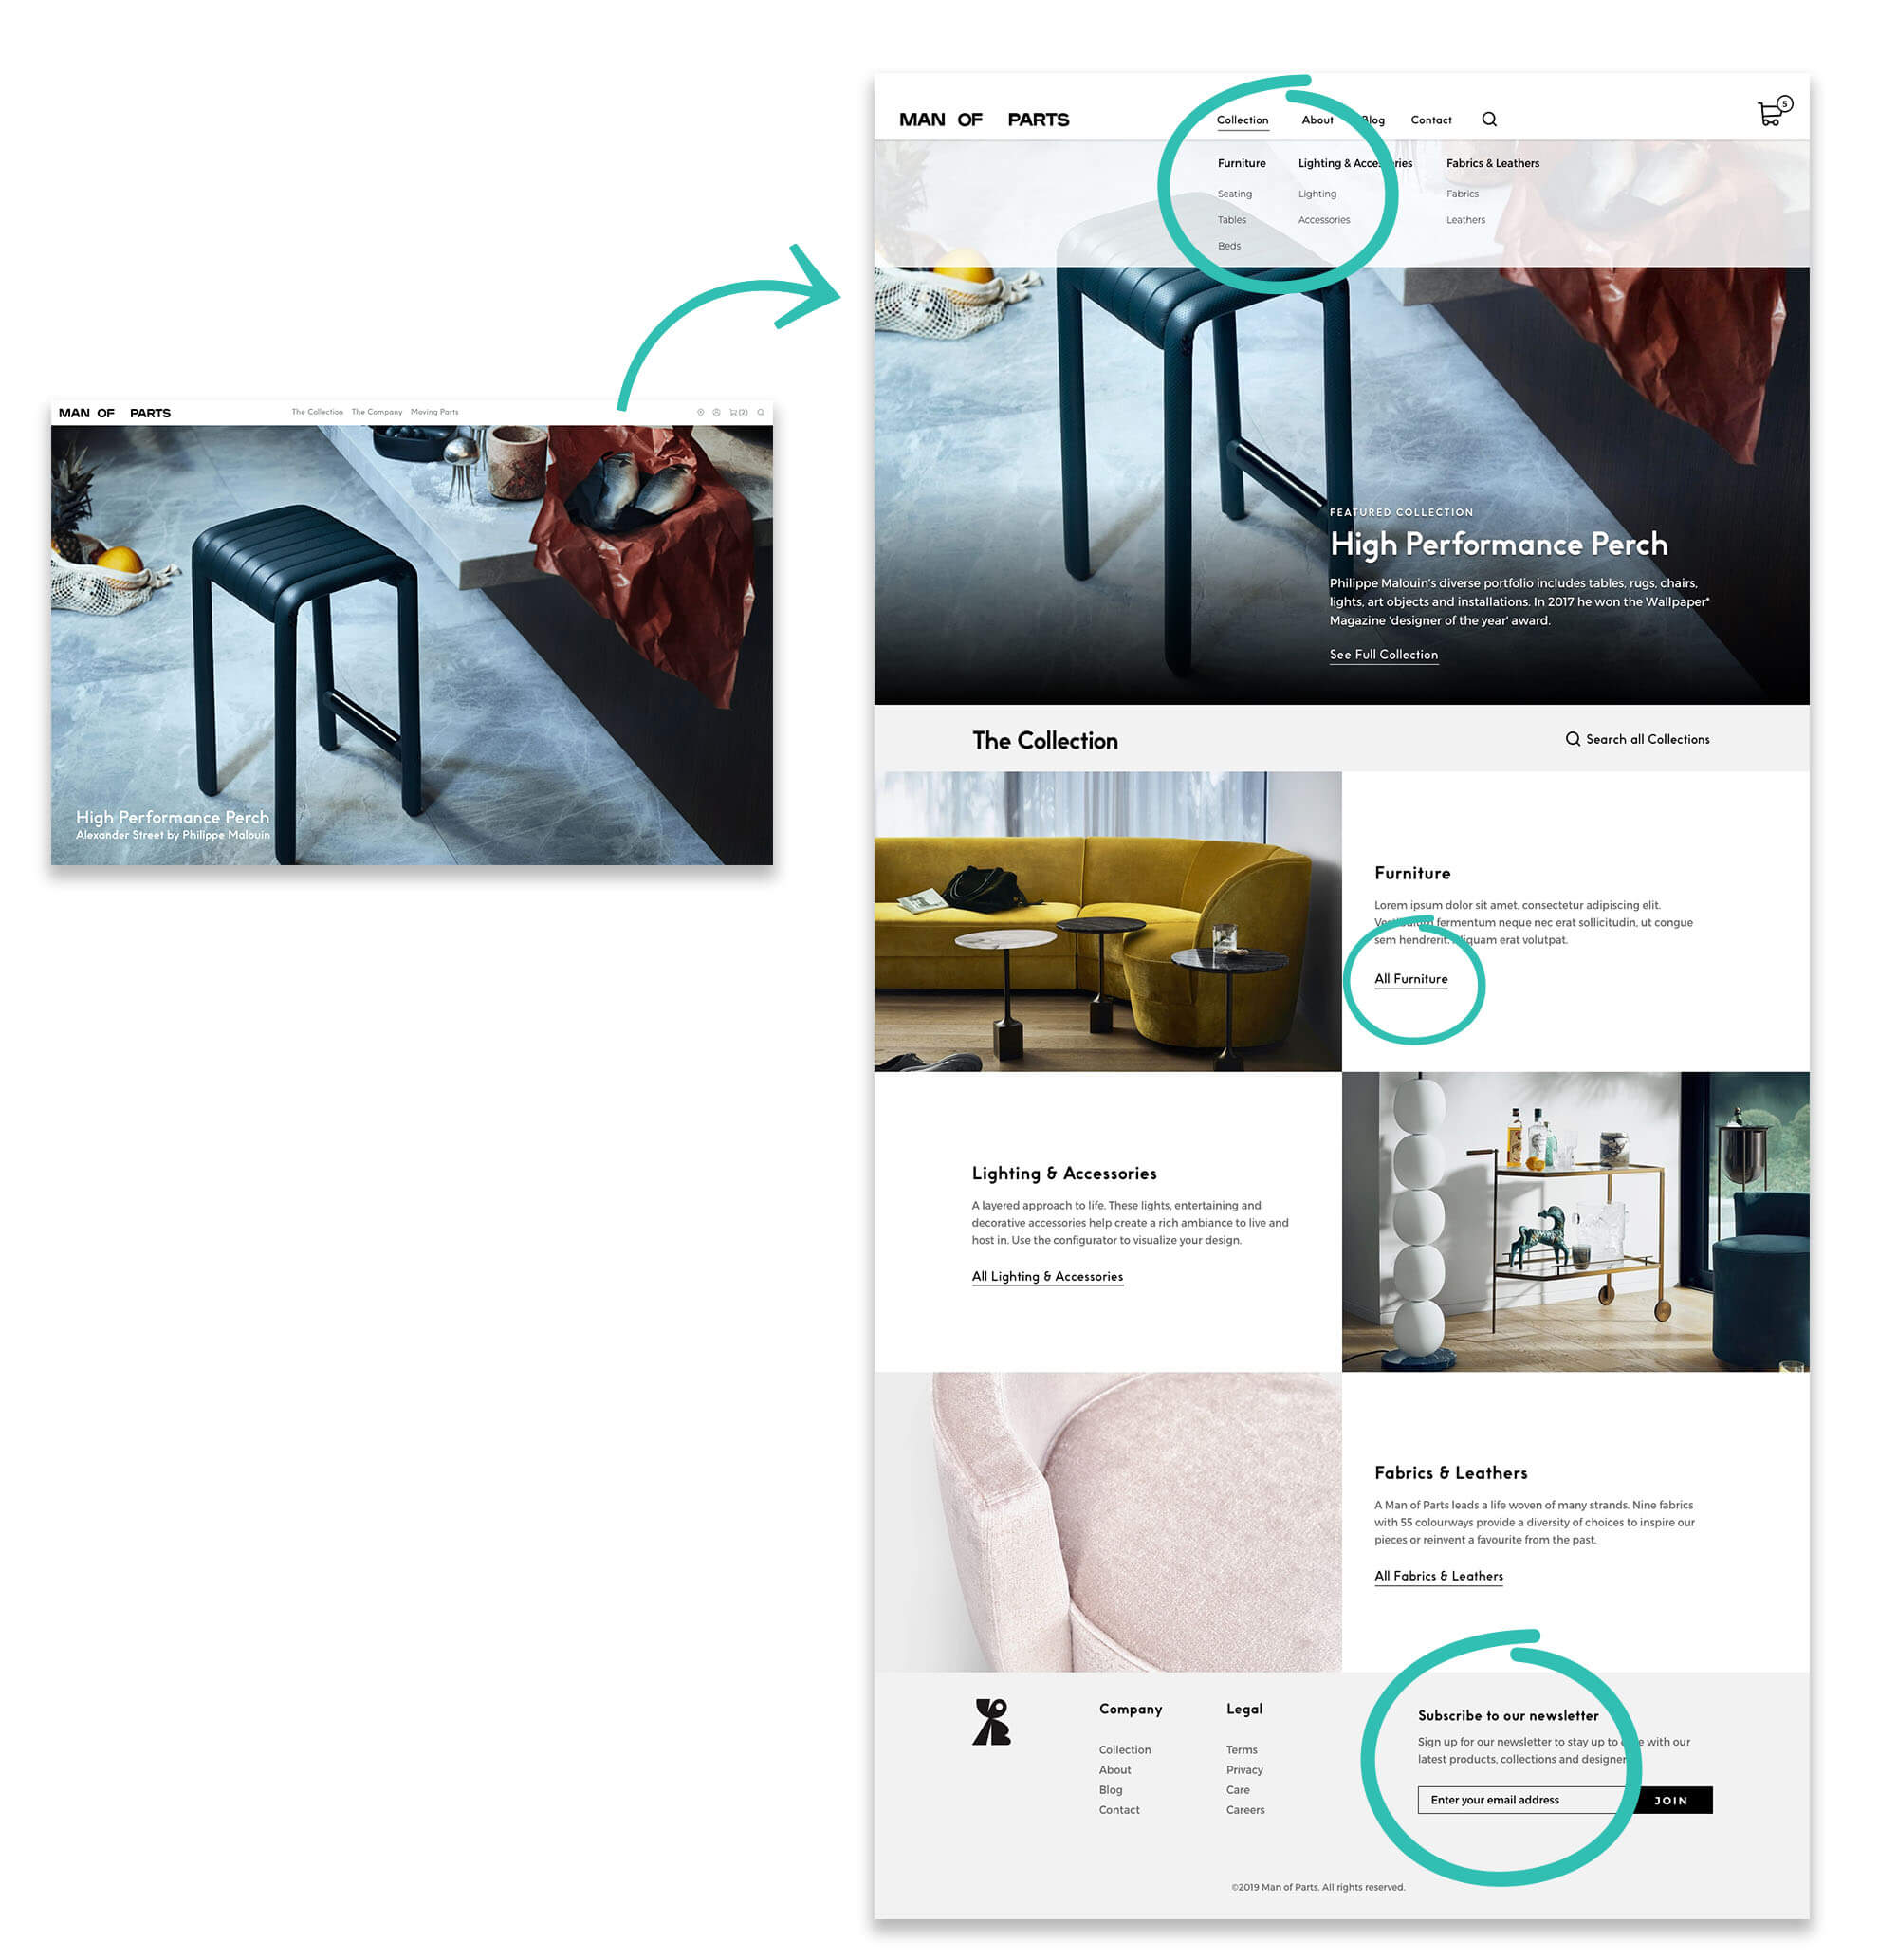 Transforming the Man of Parts home page.